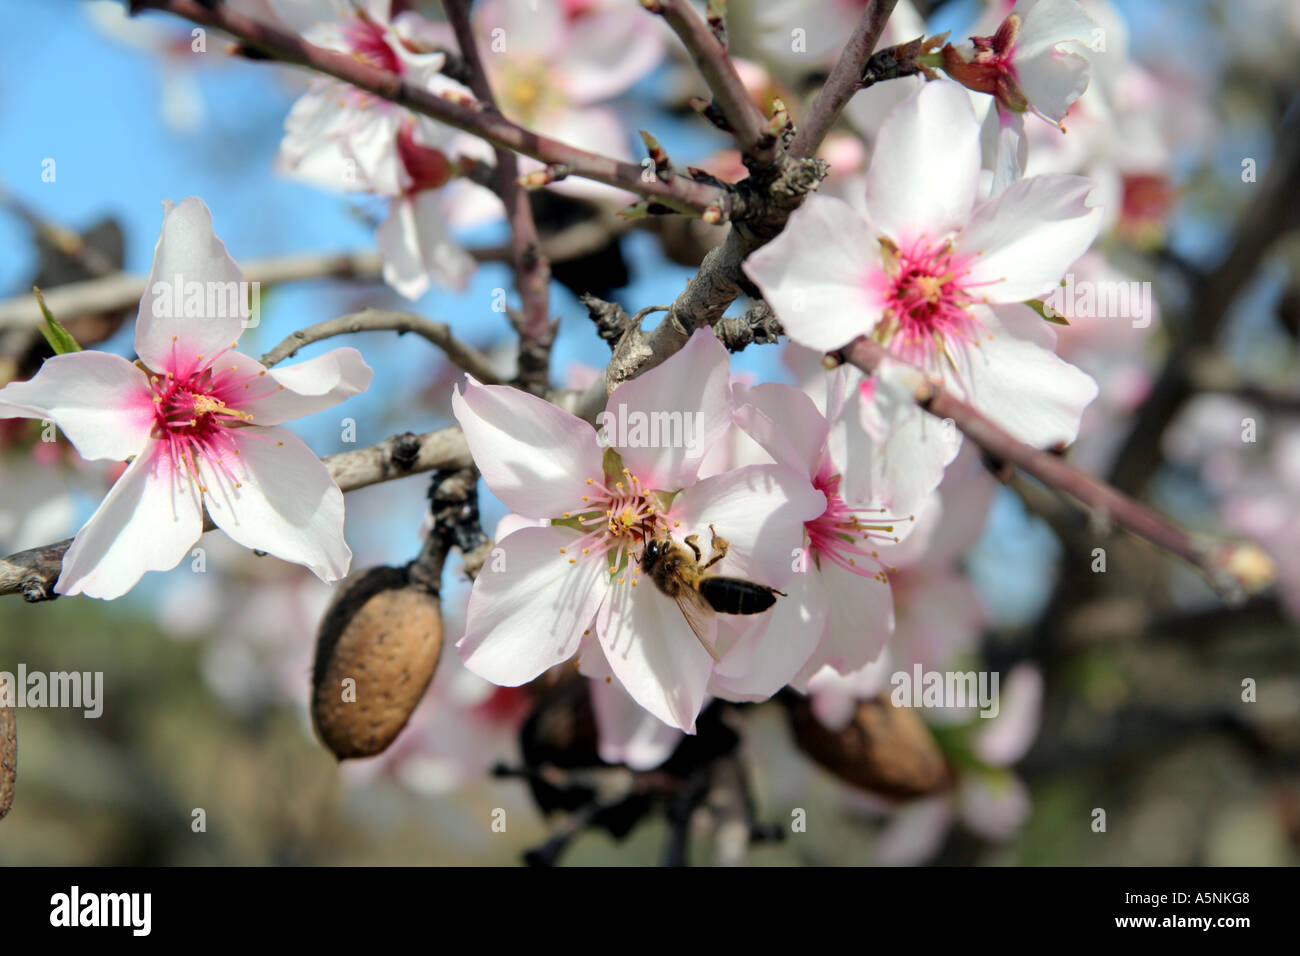 flower almond tree algarve portugal stock photos flower almond